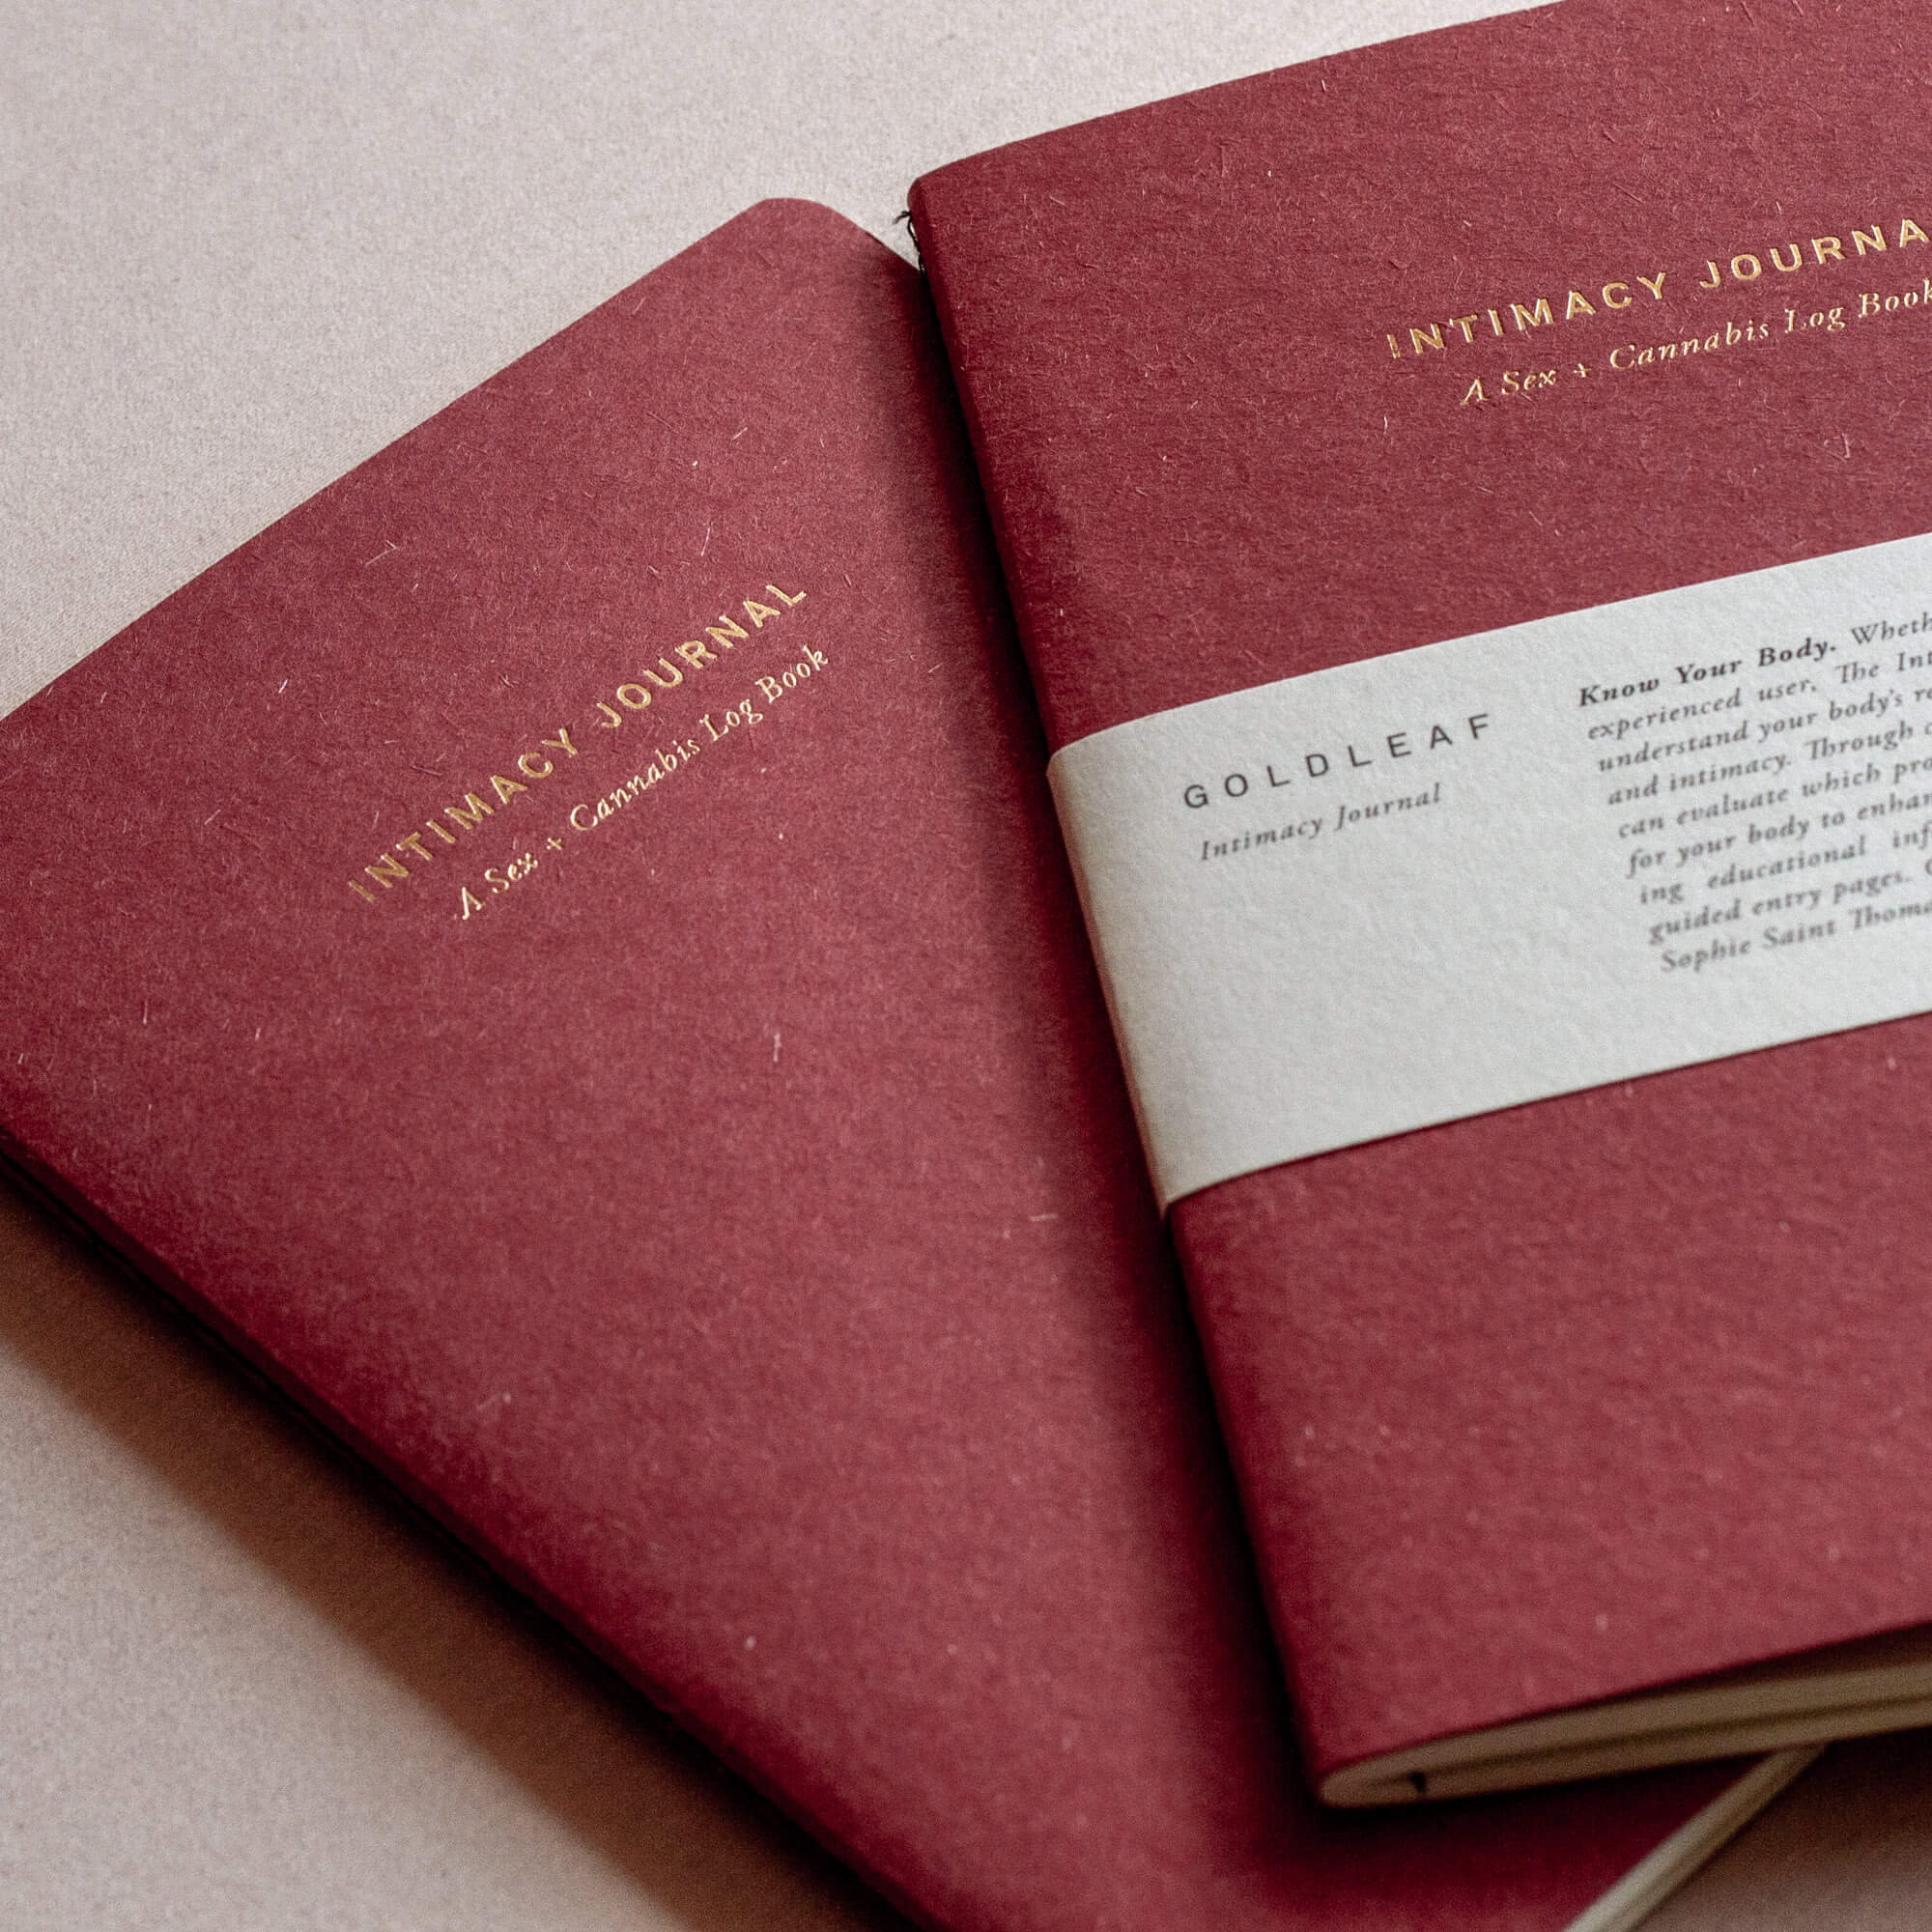 The Intimacy Journal by Goldleaf, Foria and Sophie Saint Thomas